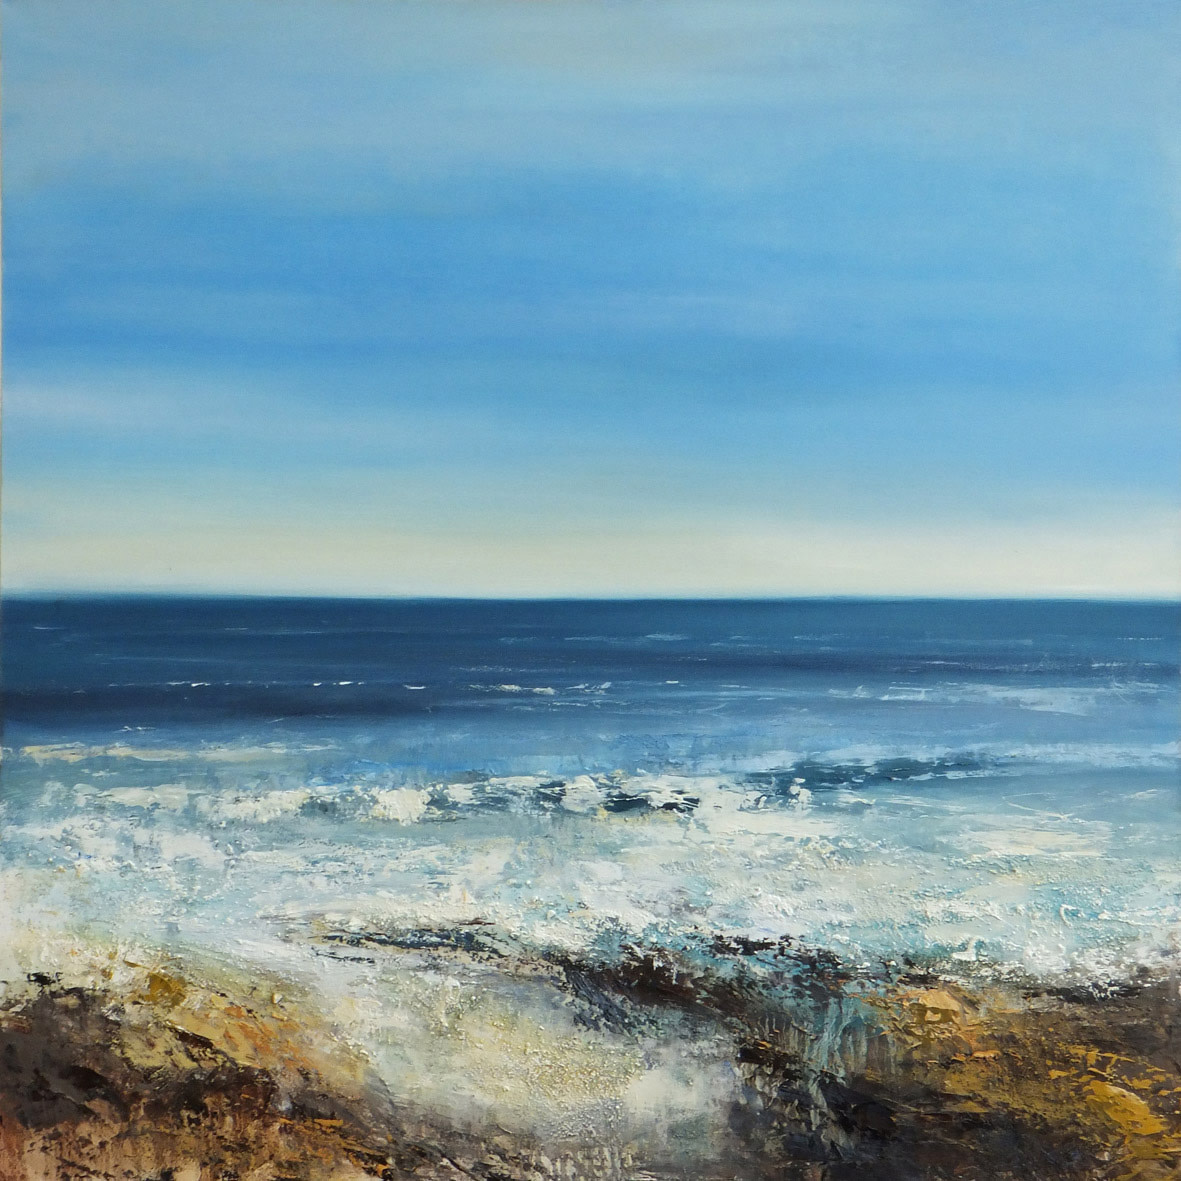 <span class=&#34;link fancybox-details-link&#34;><a href=&#34;/artists/66-joanne-last/works/5547-joanne-last-shimmering-surf-2018/&#34;>View Detail Page</a></span><div class=&#34;artist&#34;><strong>Joanne Last</strong></div> <div class=&#34;title&#34;><em>Shimmering Surf</em>, 2018</div> <div class=&#34;signed_and_dated&#34;>signed by the artist</div> <div class=&#34;medium&#34;>oil on canvas</div> <div class=&#34;dimensions&#34;>100 x 100 cm<br /> 39 3/8 x 39 3/8 inches</div><div class=&#34;copyright_line&#34;>£ 220 x 10 Months, OwnArt 0% APR</div>